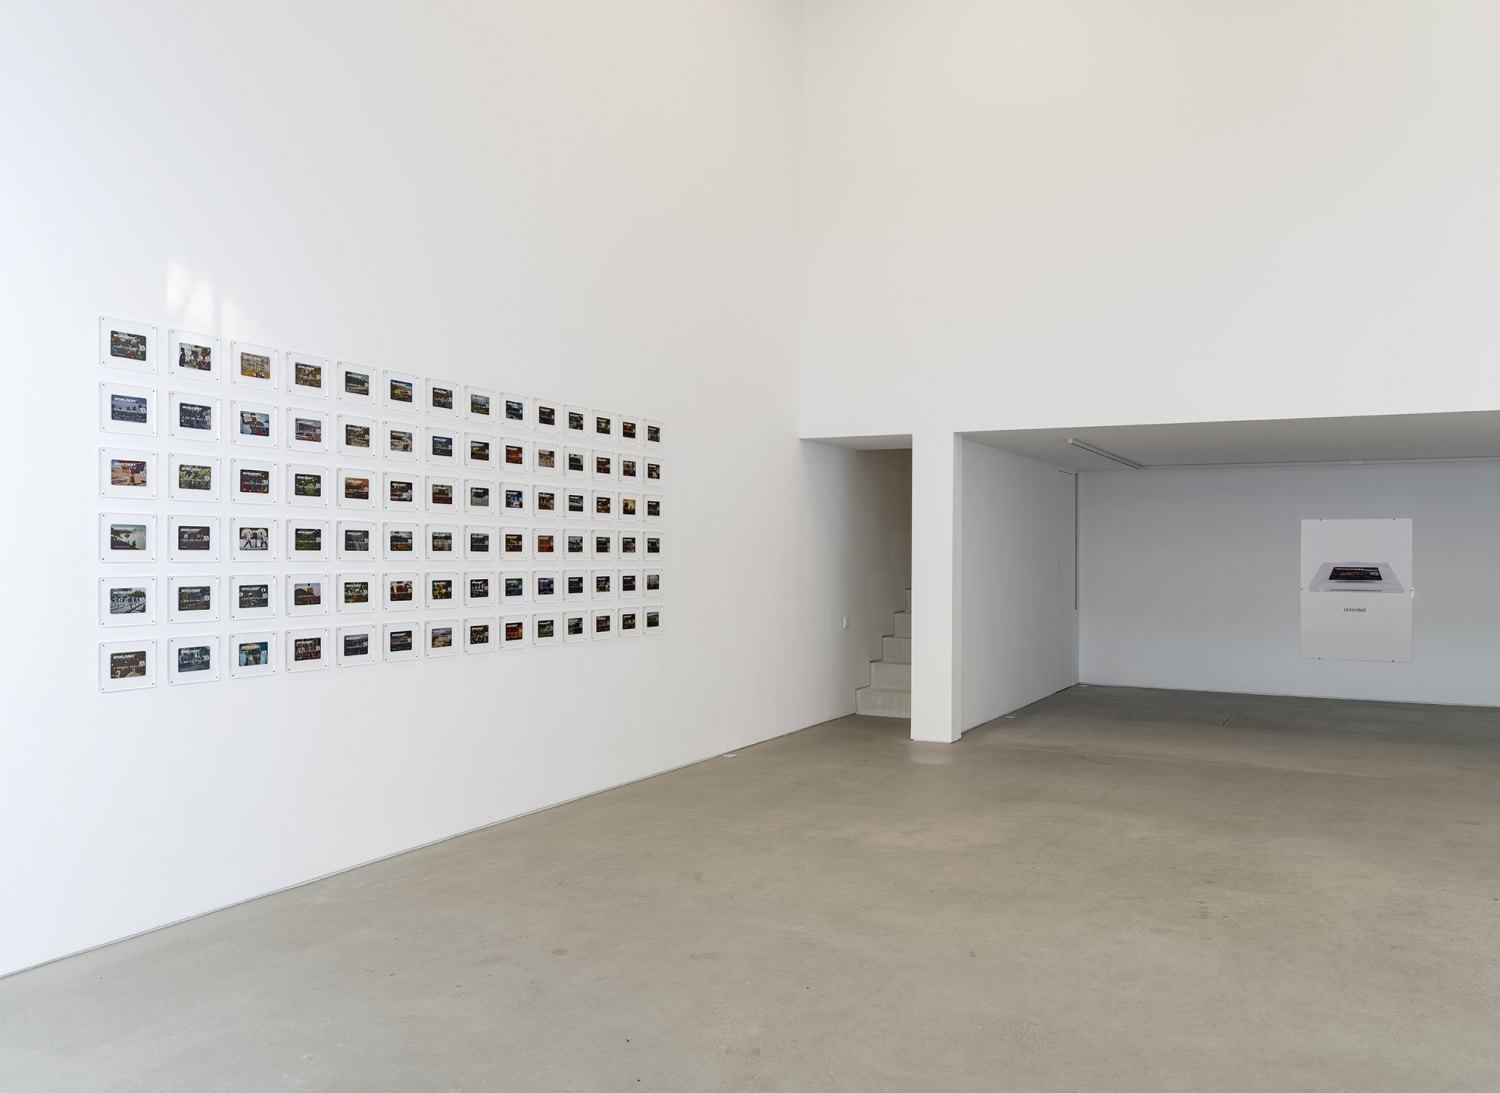 Installation view, John Knight, Worldebt, Galerie Neu at The Intermission, Piraeus, 2019